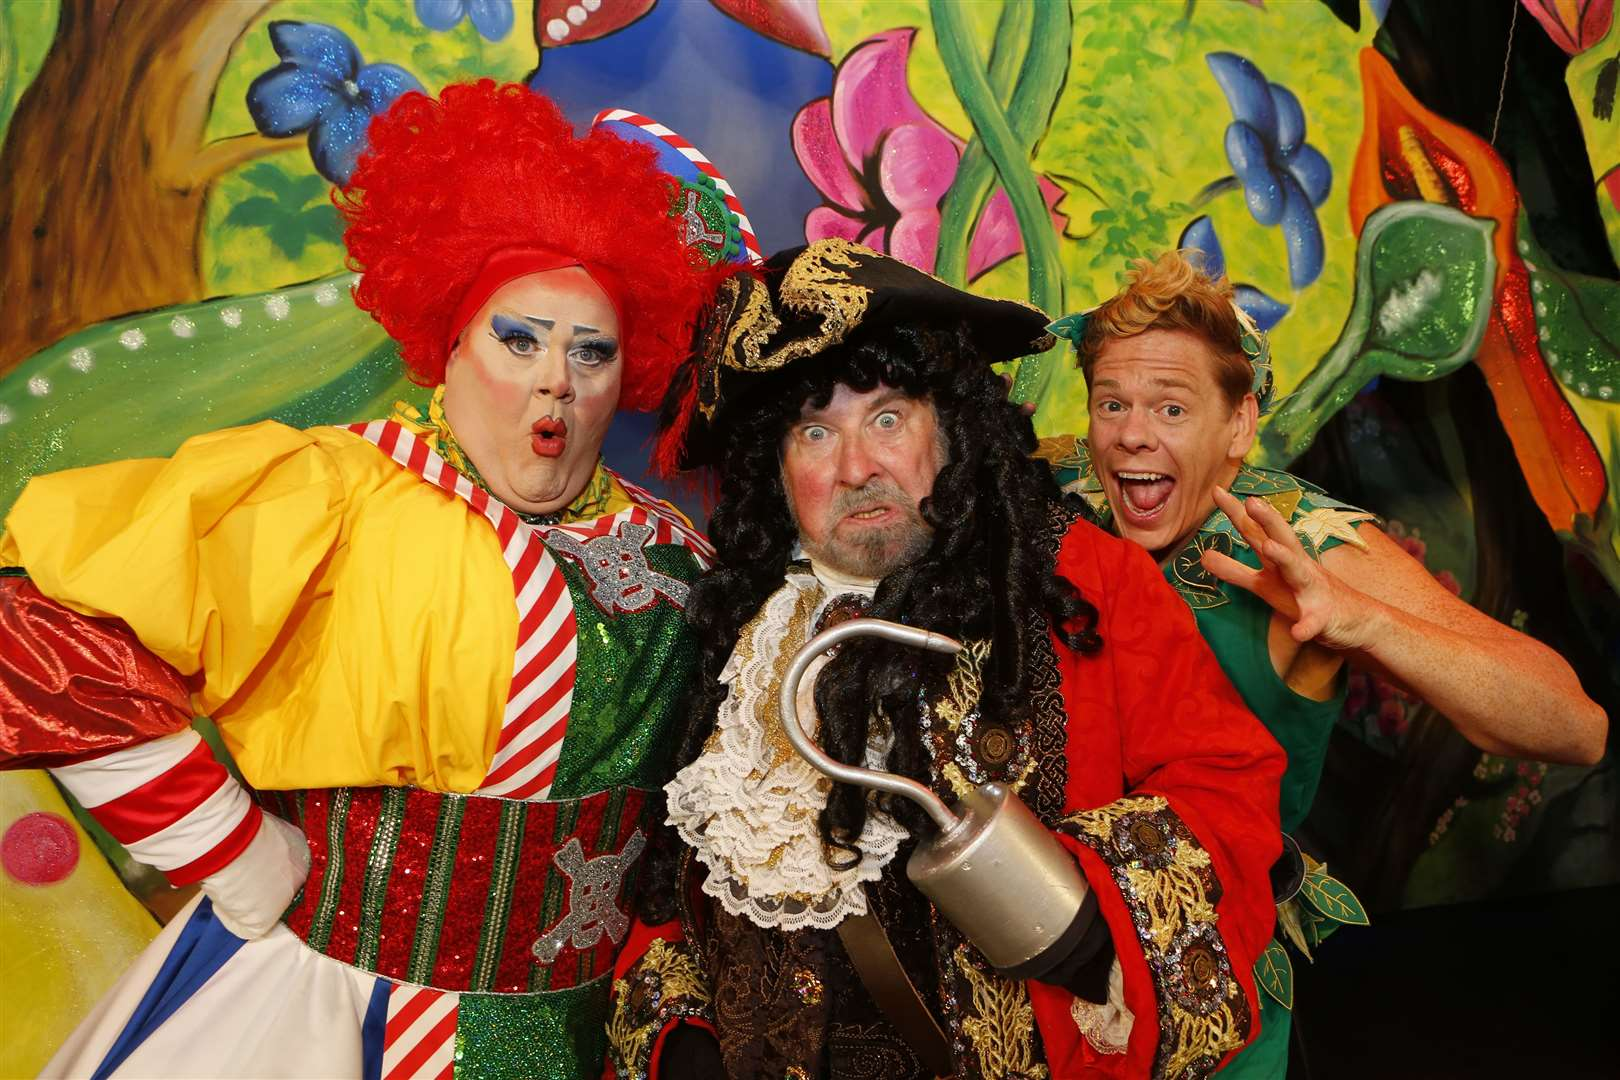 Panto launch for Peter Pan..Pictured are Quinn Patrick (Mrs Smee), Paul Bradley (Captain Hook) & Lloyd Warbey (Peter Pan) .Assembly Hall Theatre, Tunbridge Wells..Picture: Andy Jones. (16997009)